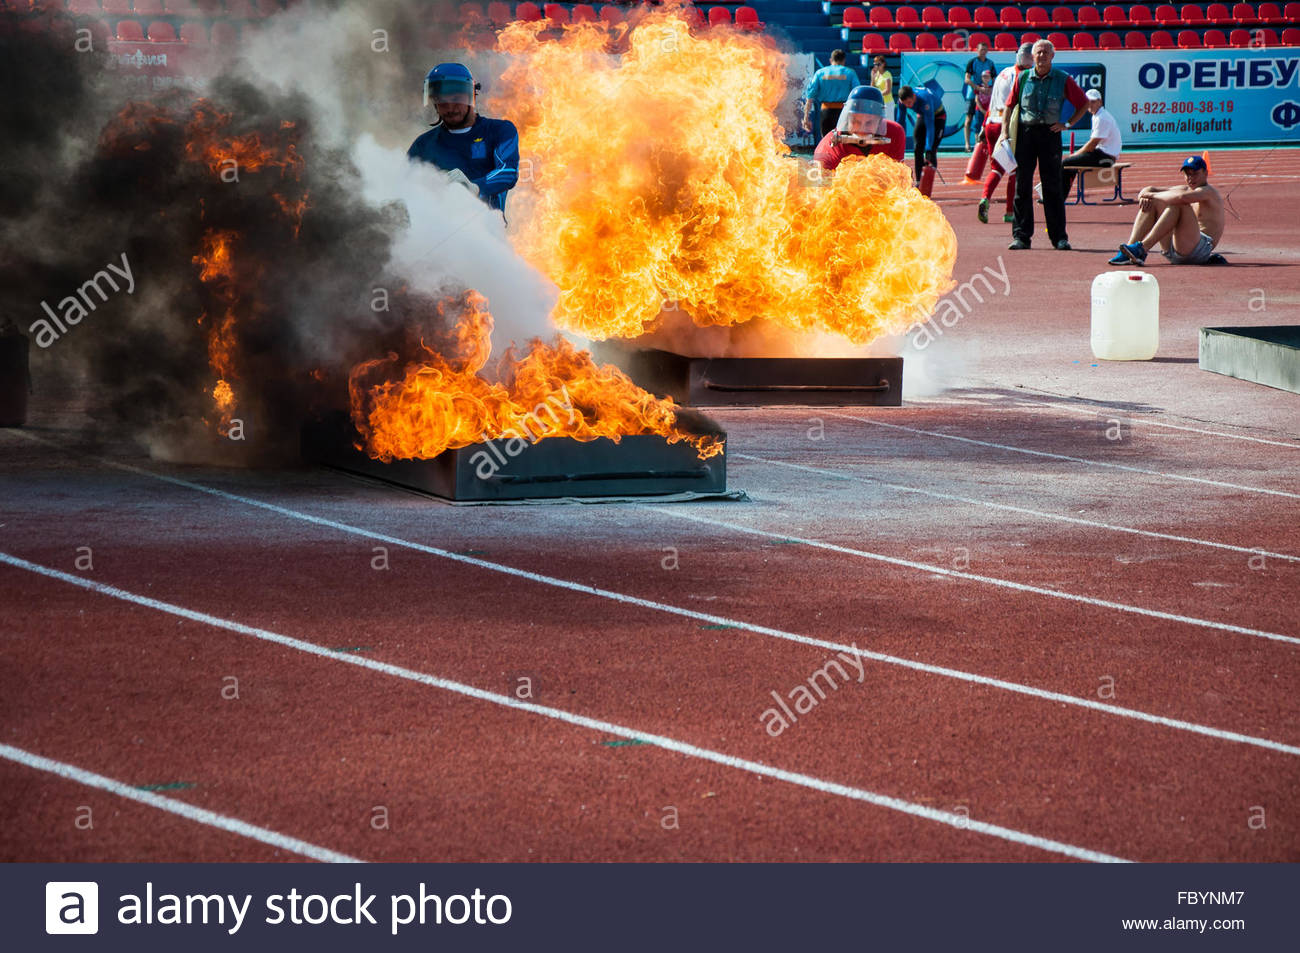 Fire relay race - Stock Image